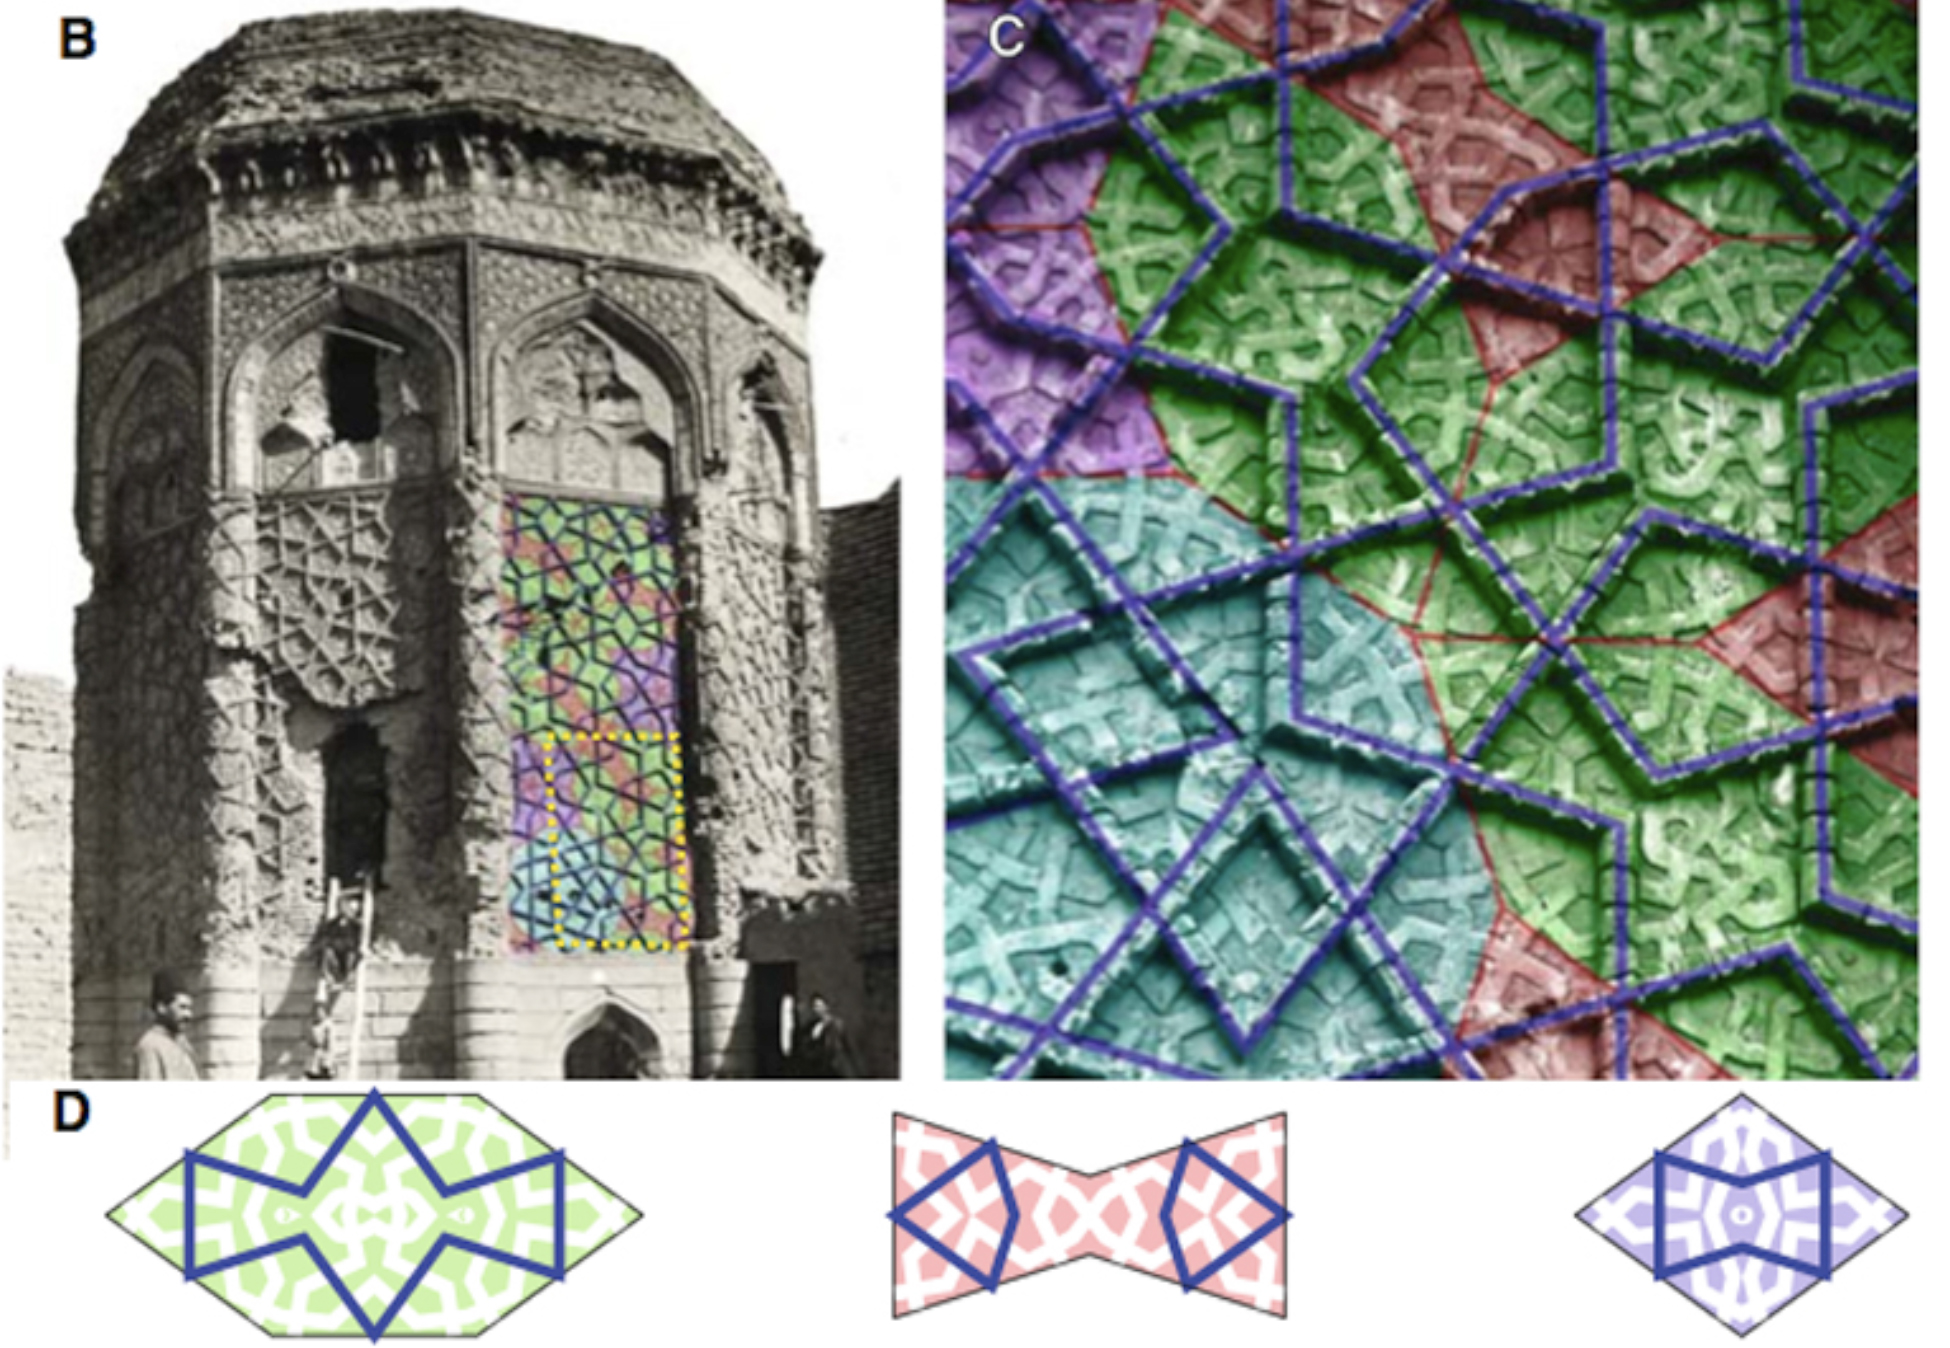 Data clay projects digital islam penrose tiling system analysis of tiling at gunbad i kabud tomb tower maragha iran lu p 2007 steinhardt p decagonal and quasi crystalline tilings in medieval islamic dailygadgetfo Images